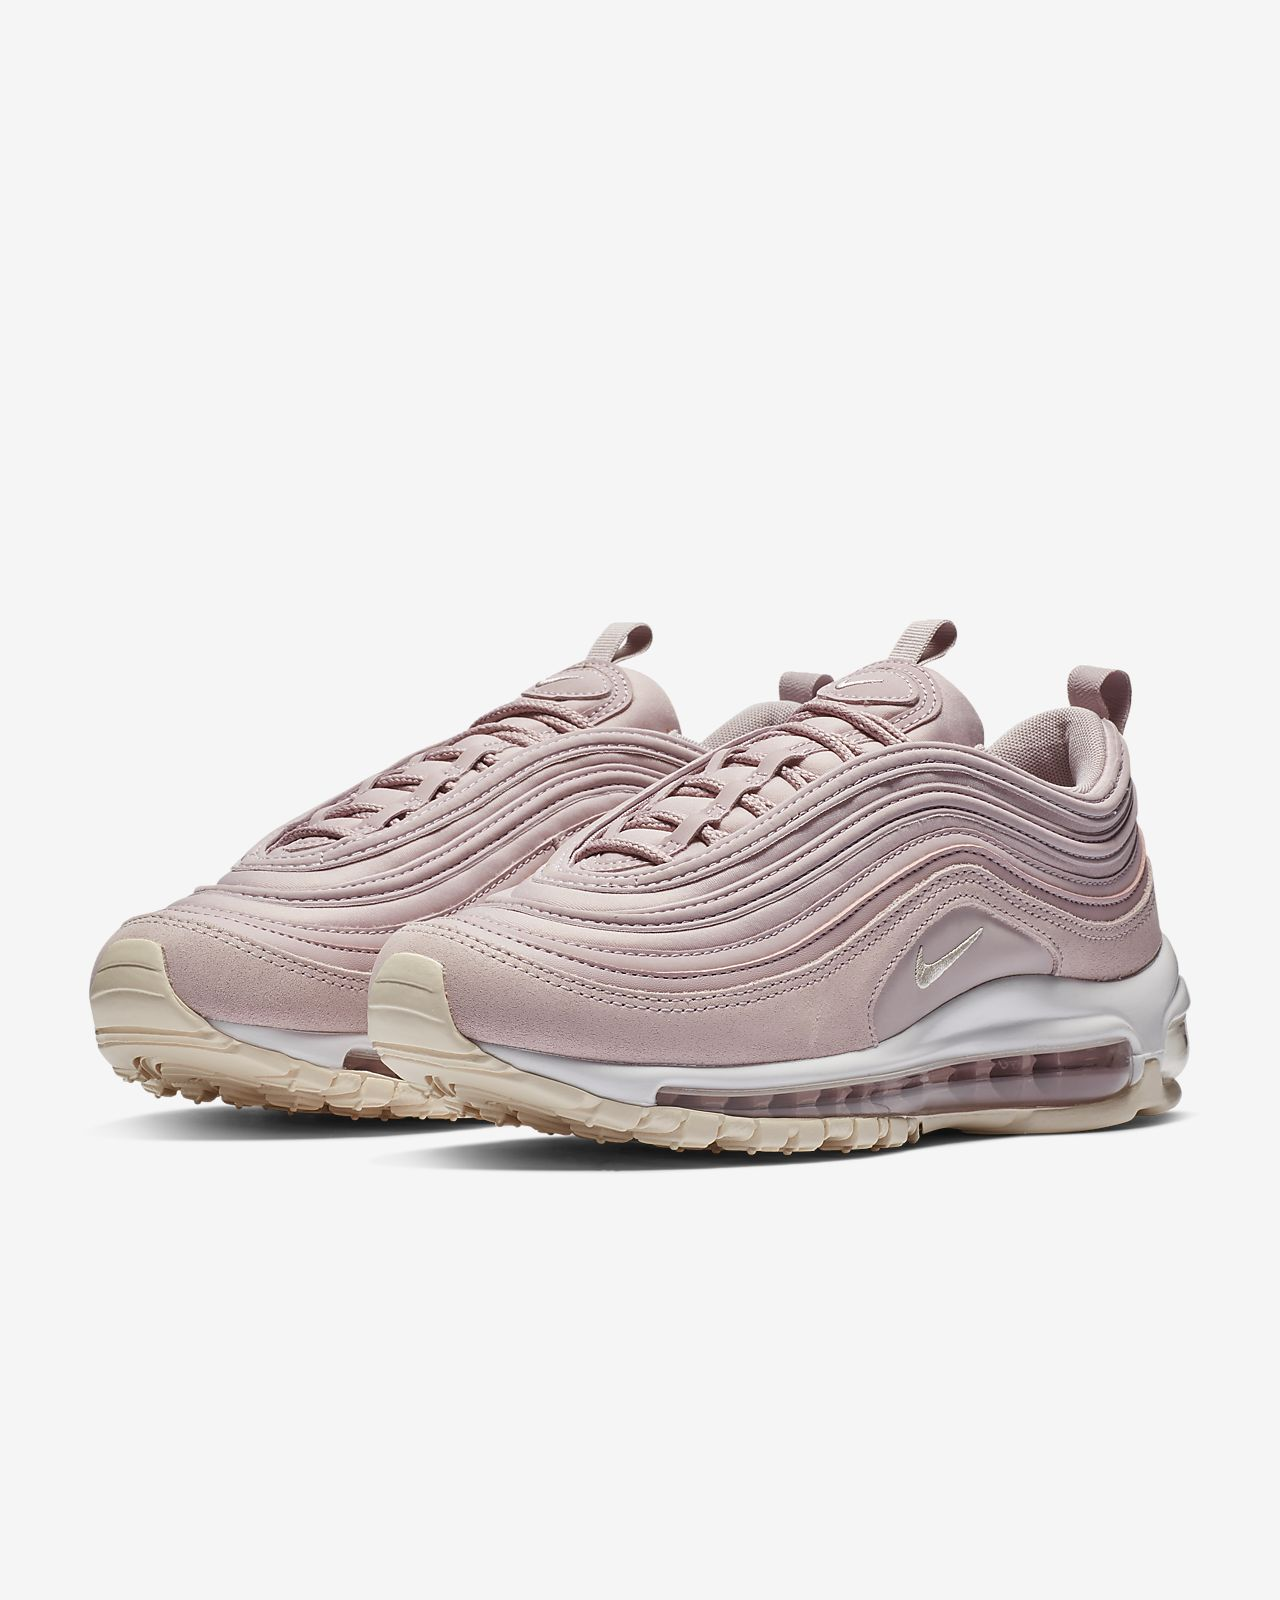 brand new e43ed 4bfe7 ... Nike Air Max 97 Premium Womens Shoe